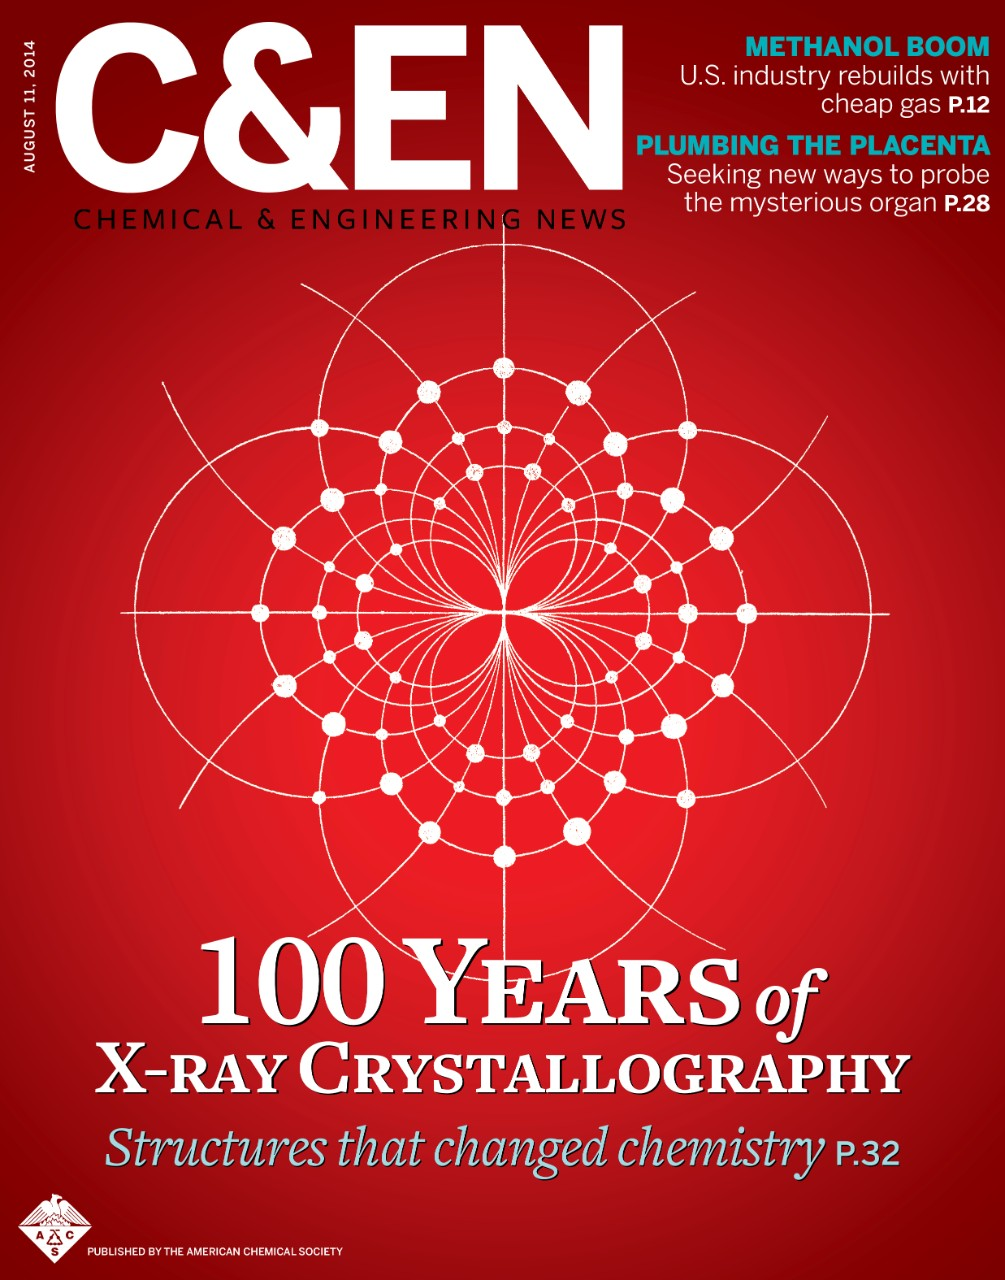 Iycr2014 events articles about crystallography in cen to mark 100 years of crystallography the american chemical society publication chemical engineering news has fandeluxe Images